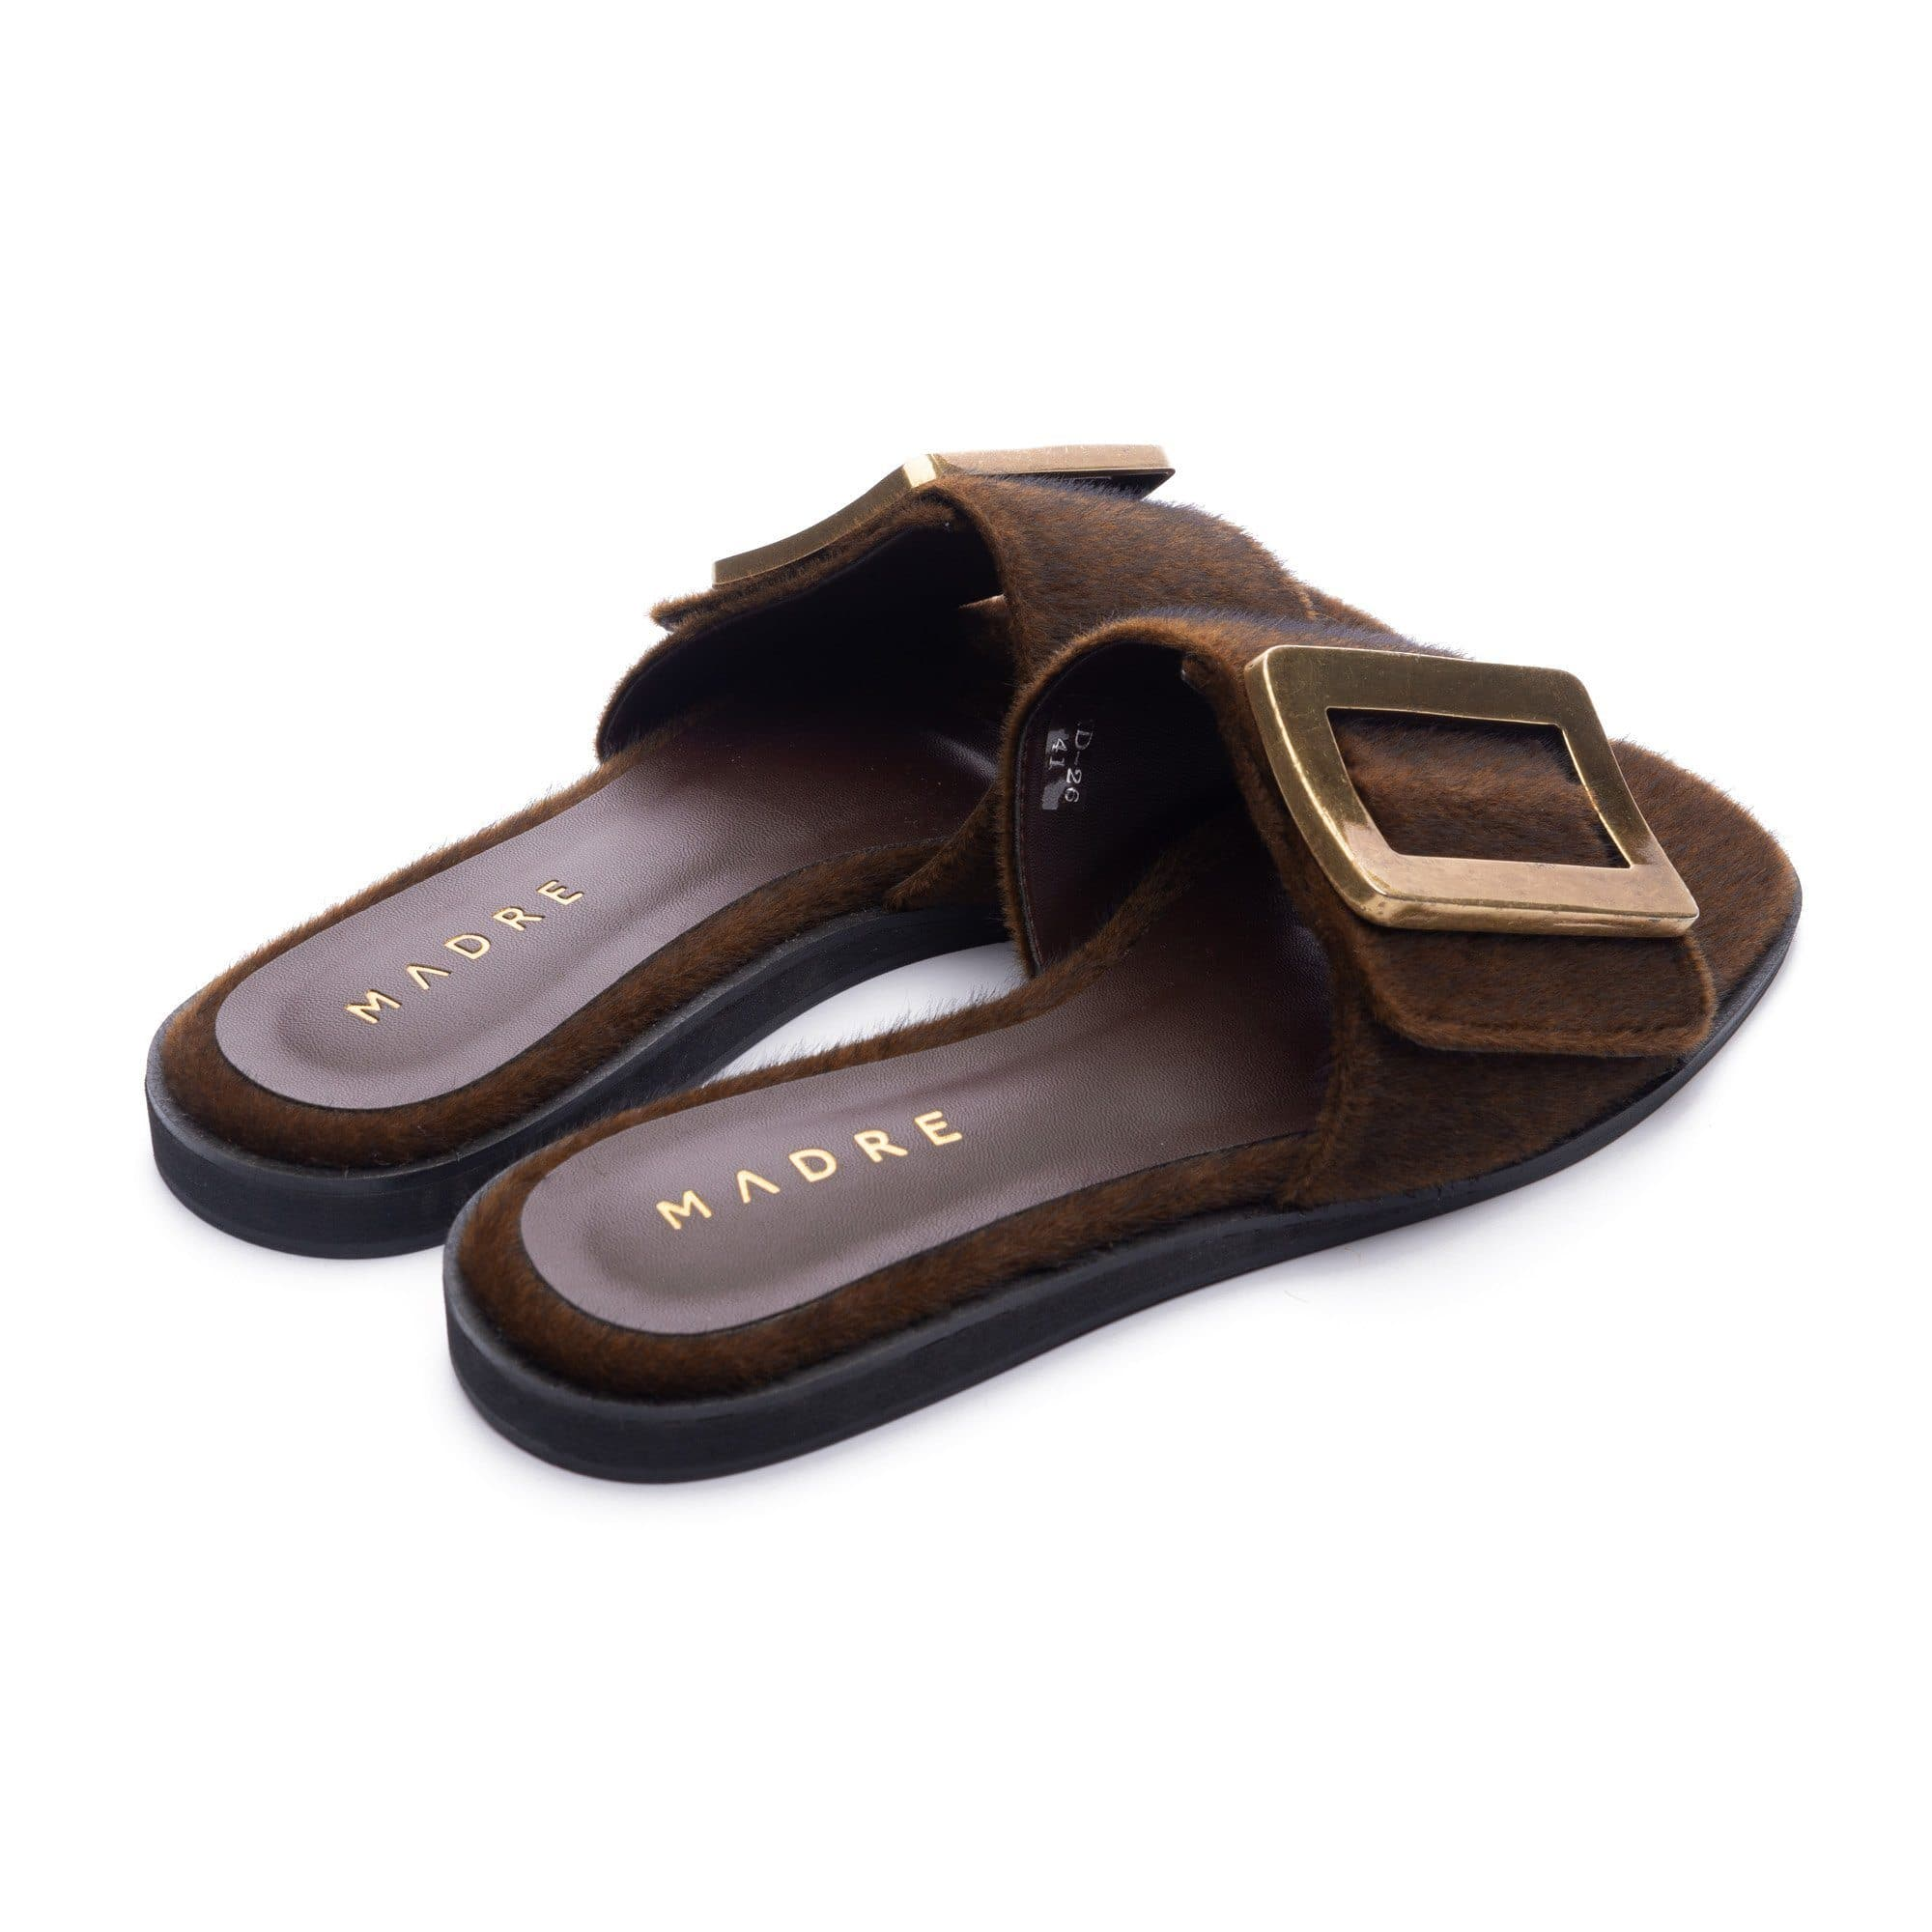 Rustica Flat Shoes Madre Collection 36 Brown